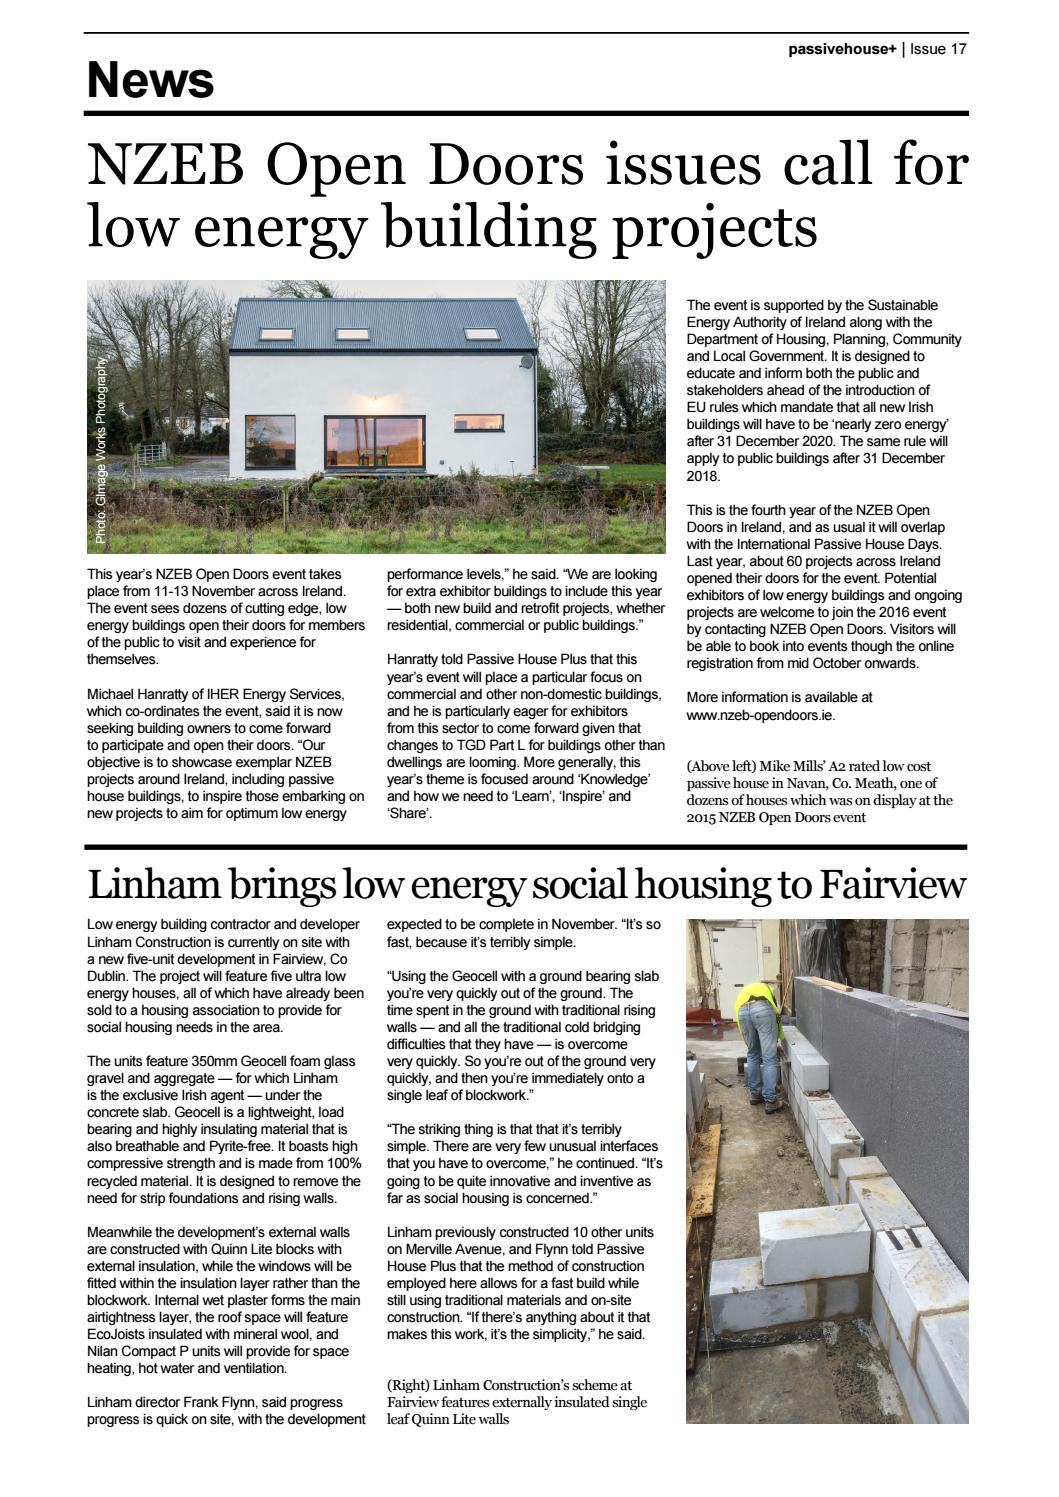 Passive house plus issue 17 (irish edition) by Passive House Plus ...